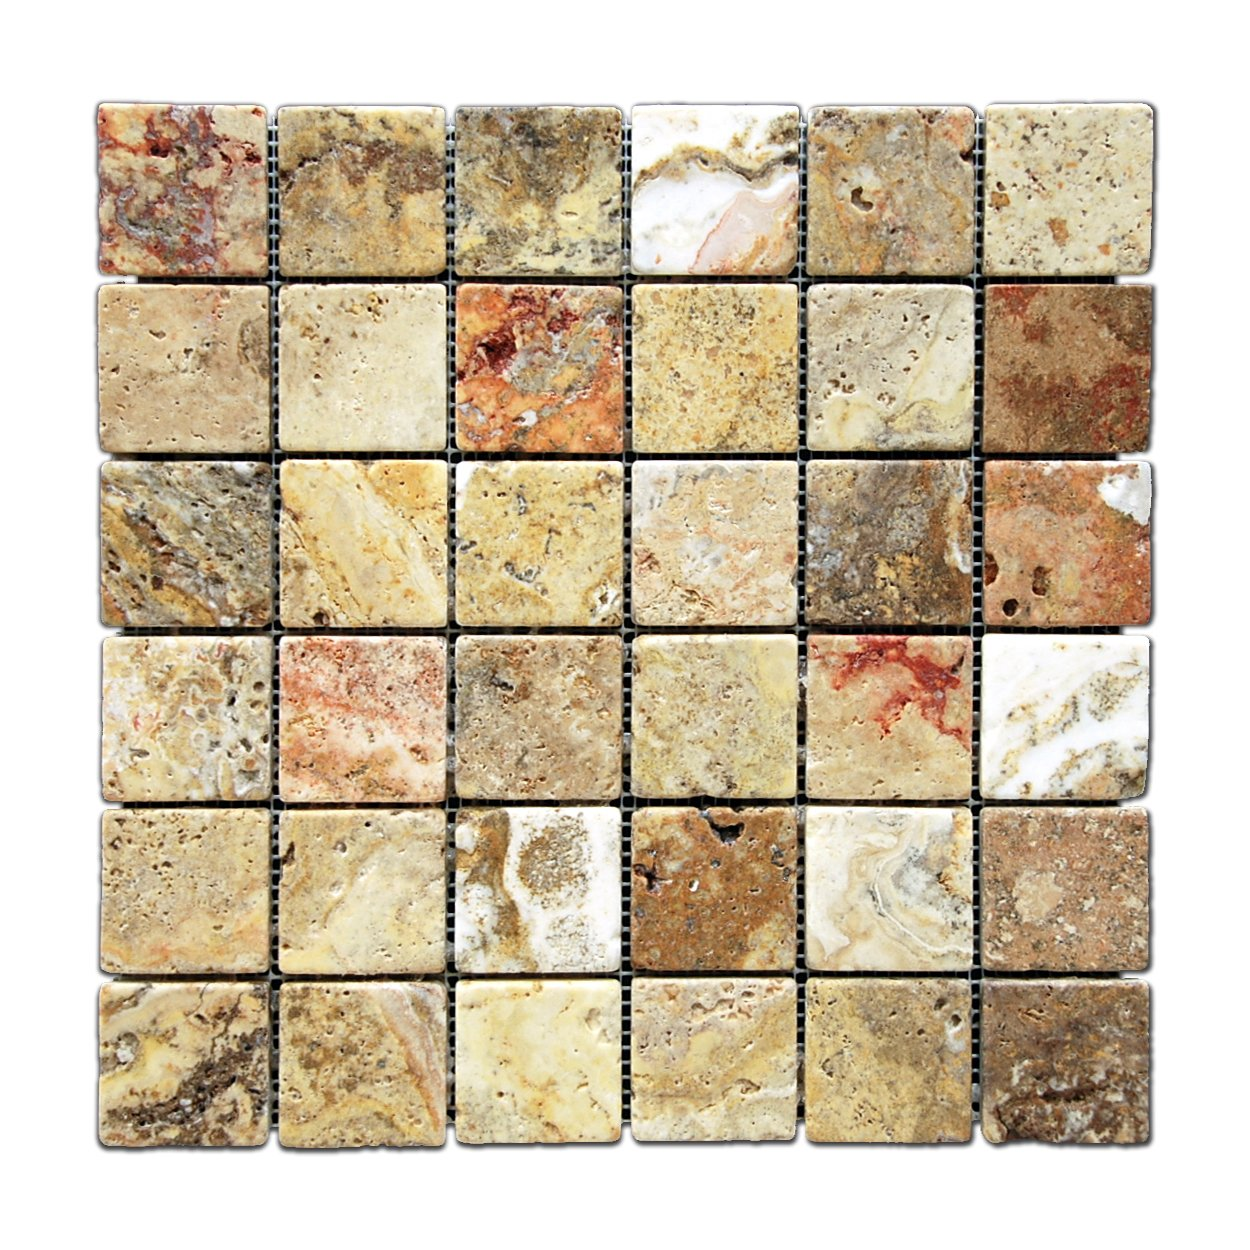 scabos 2 x 2 tumbled travertine mosaic tile 6 x 6 sample marble tiles amazoncom